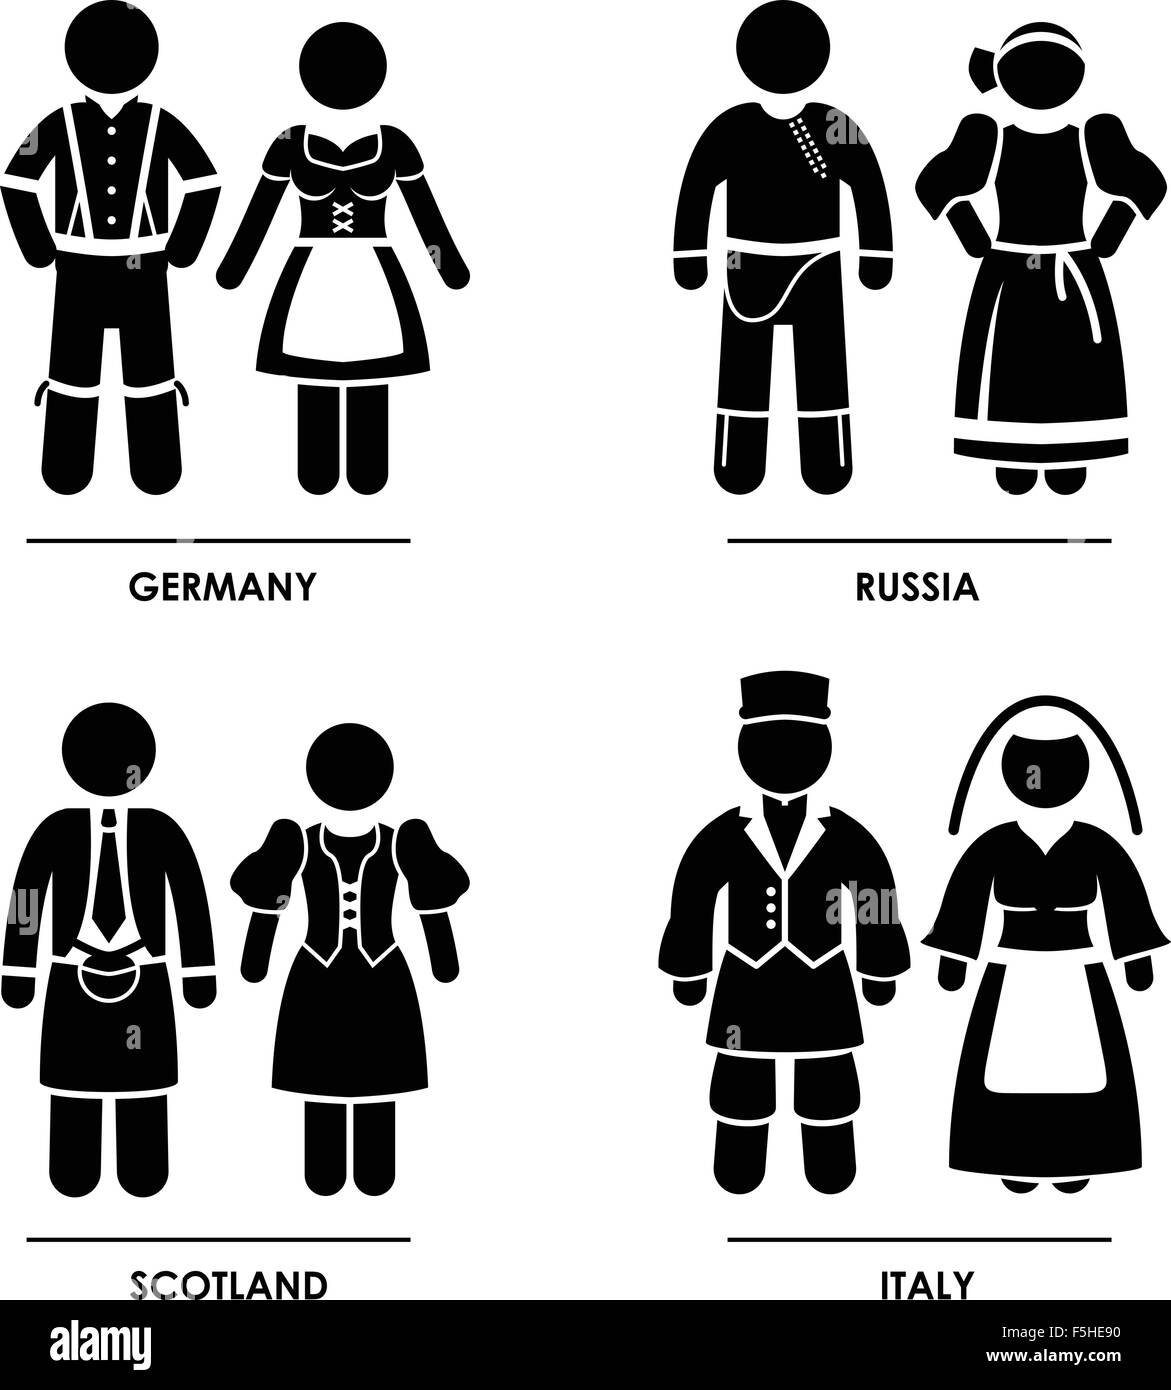 German symbol for sister gallery symbols and meanings national costume germany girl stock photos national costume europe germany russia scotland italy man woman national biocorpaavc Gallery